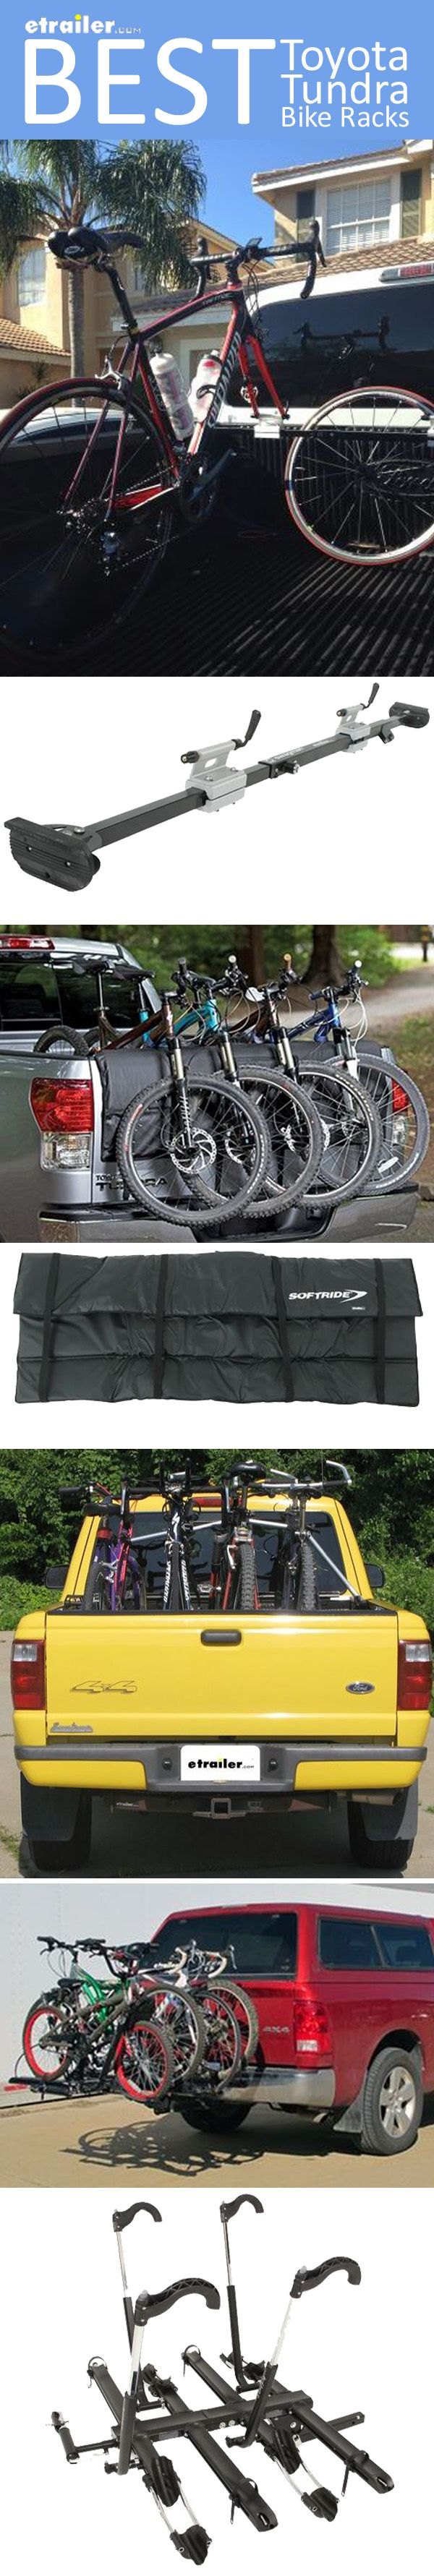 Best rack of the day car pictures - Find The Best Bike Rack For Your Toyota Tundra Truck Bed Mounted Tailgate Pad